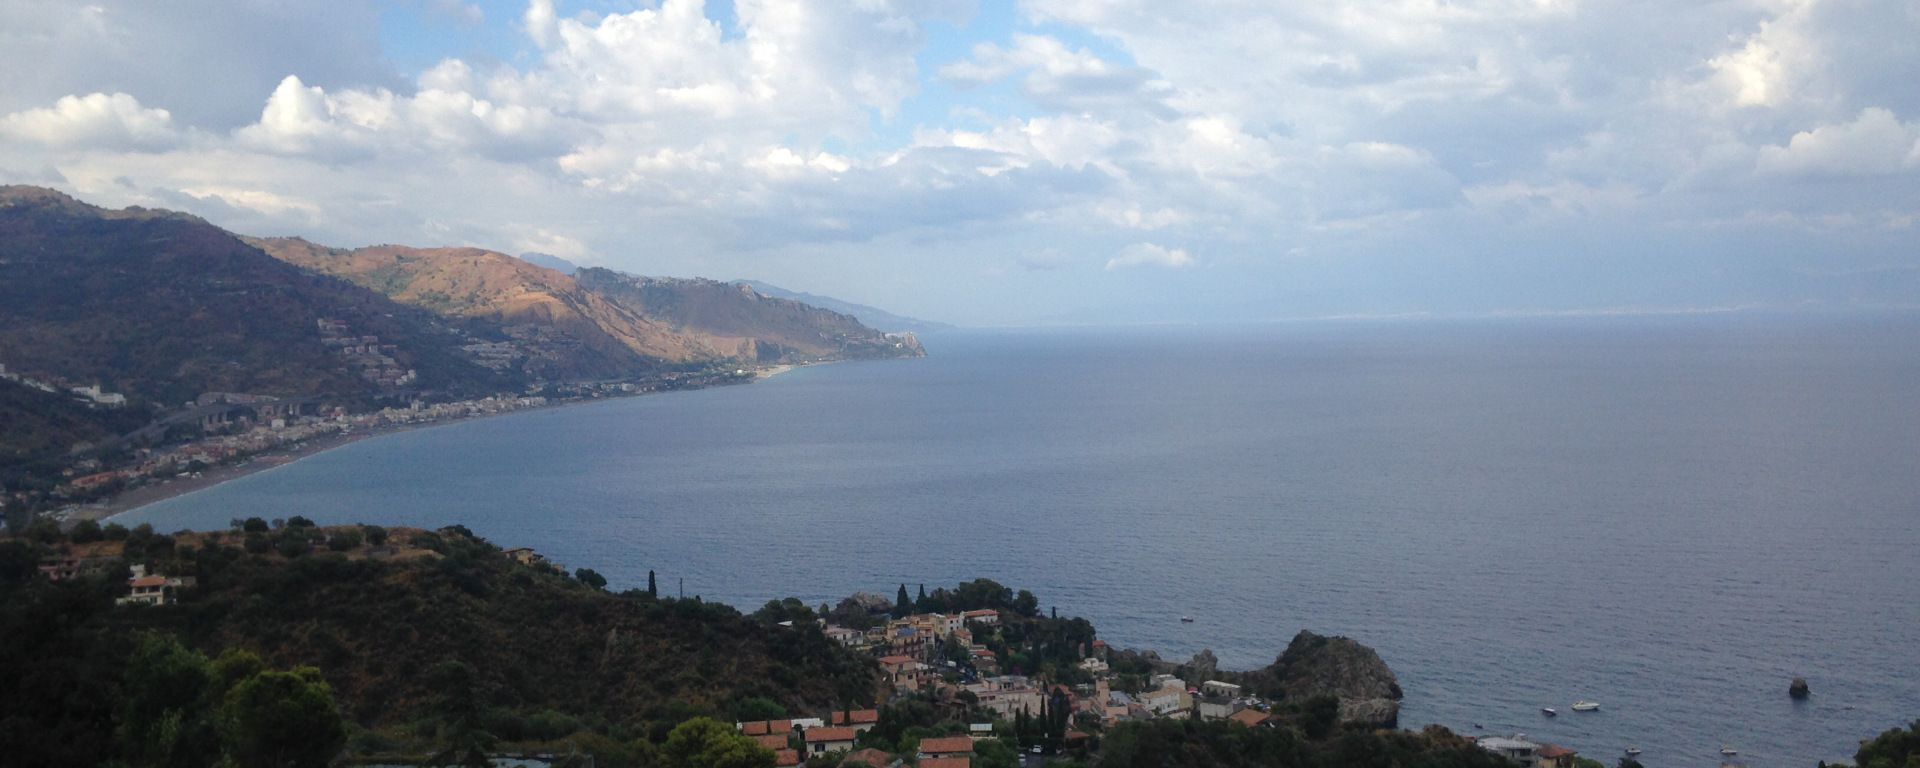 Taormina and Giardini Naxos are well known in Sicily and